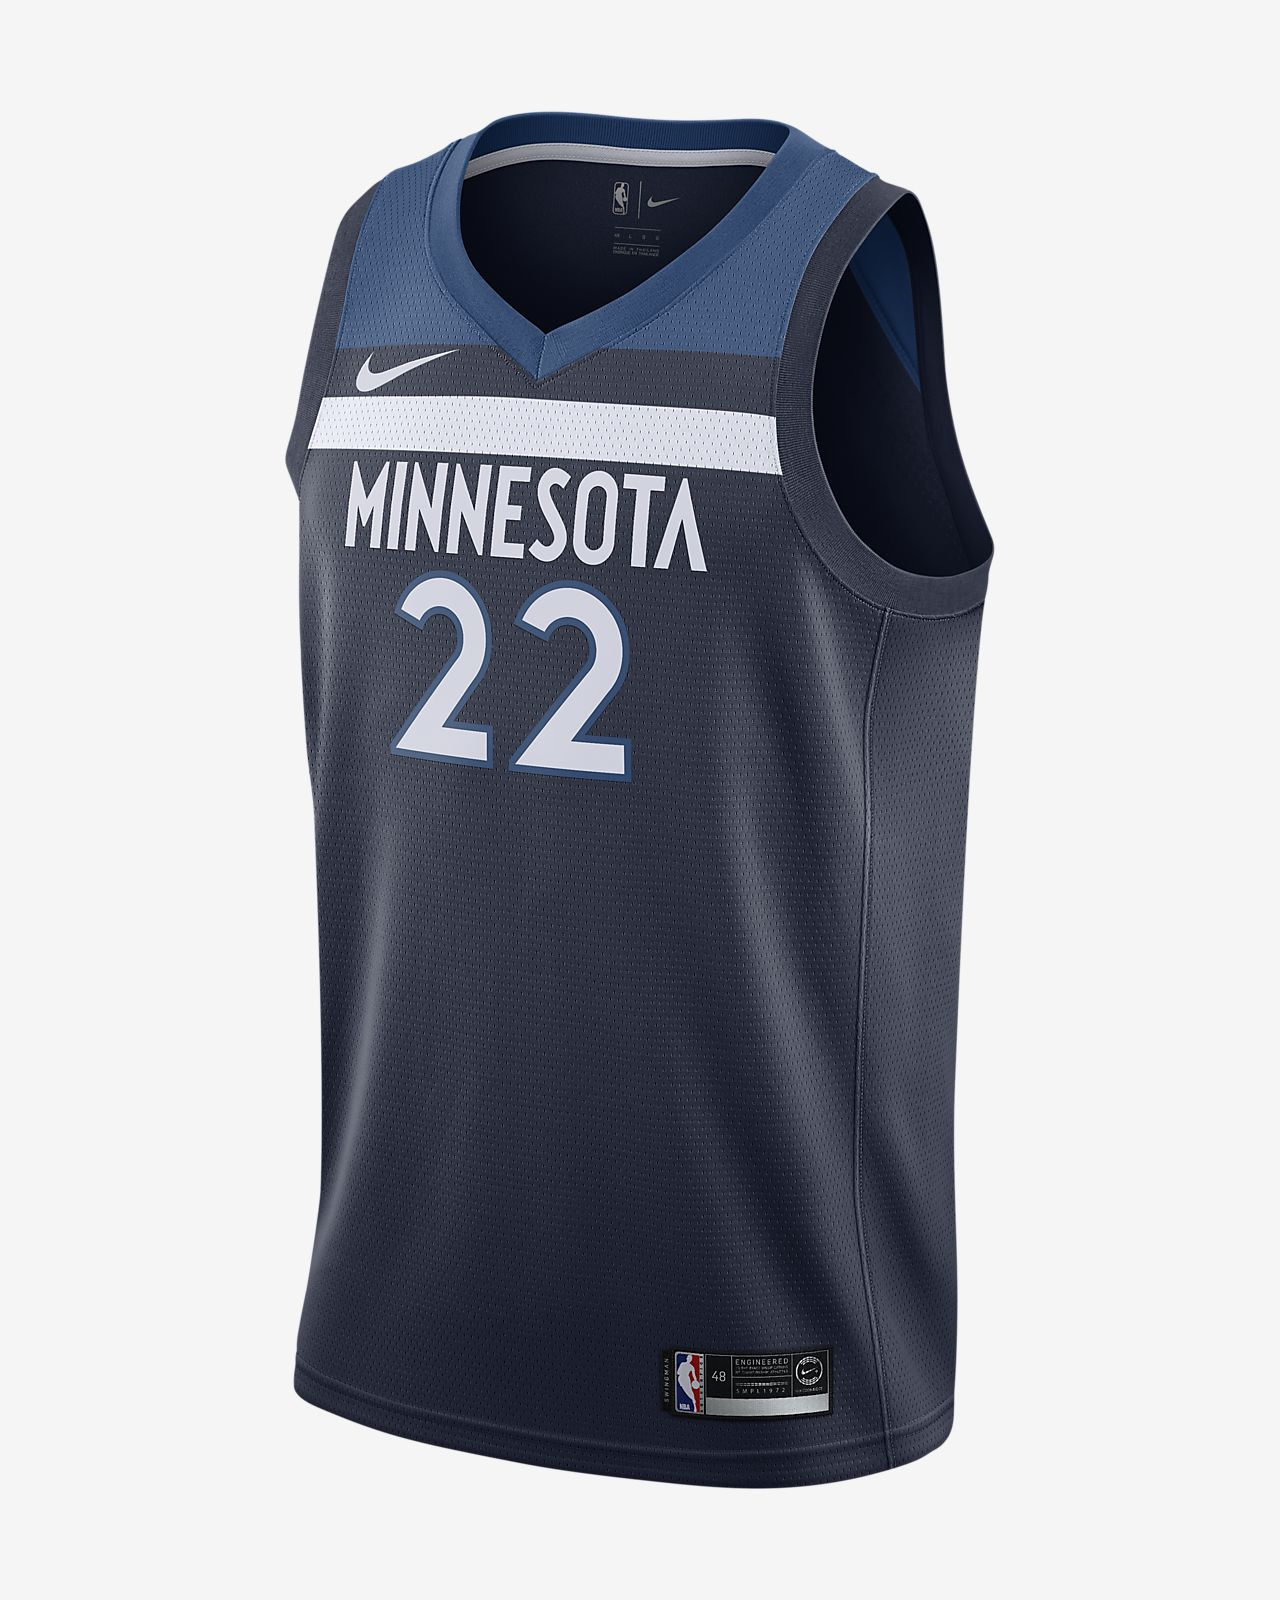 Camiseta Nike NBA Swingman Andrew Wiggins Timberwolves Icon Edition